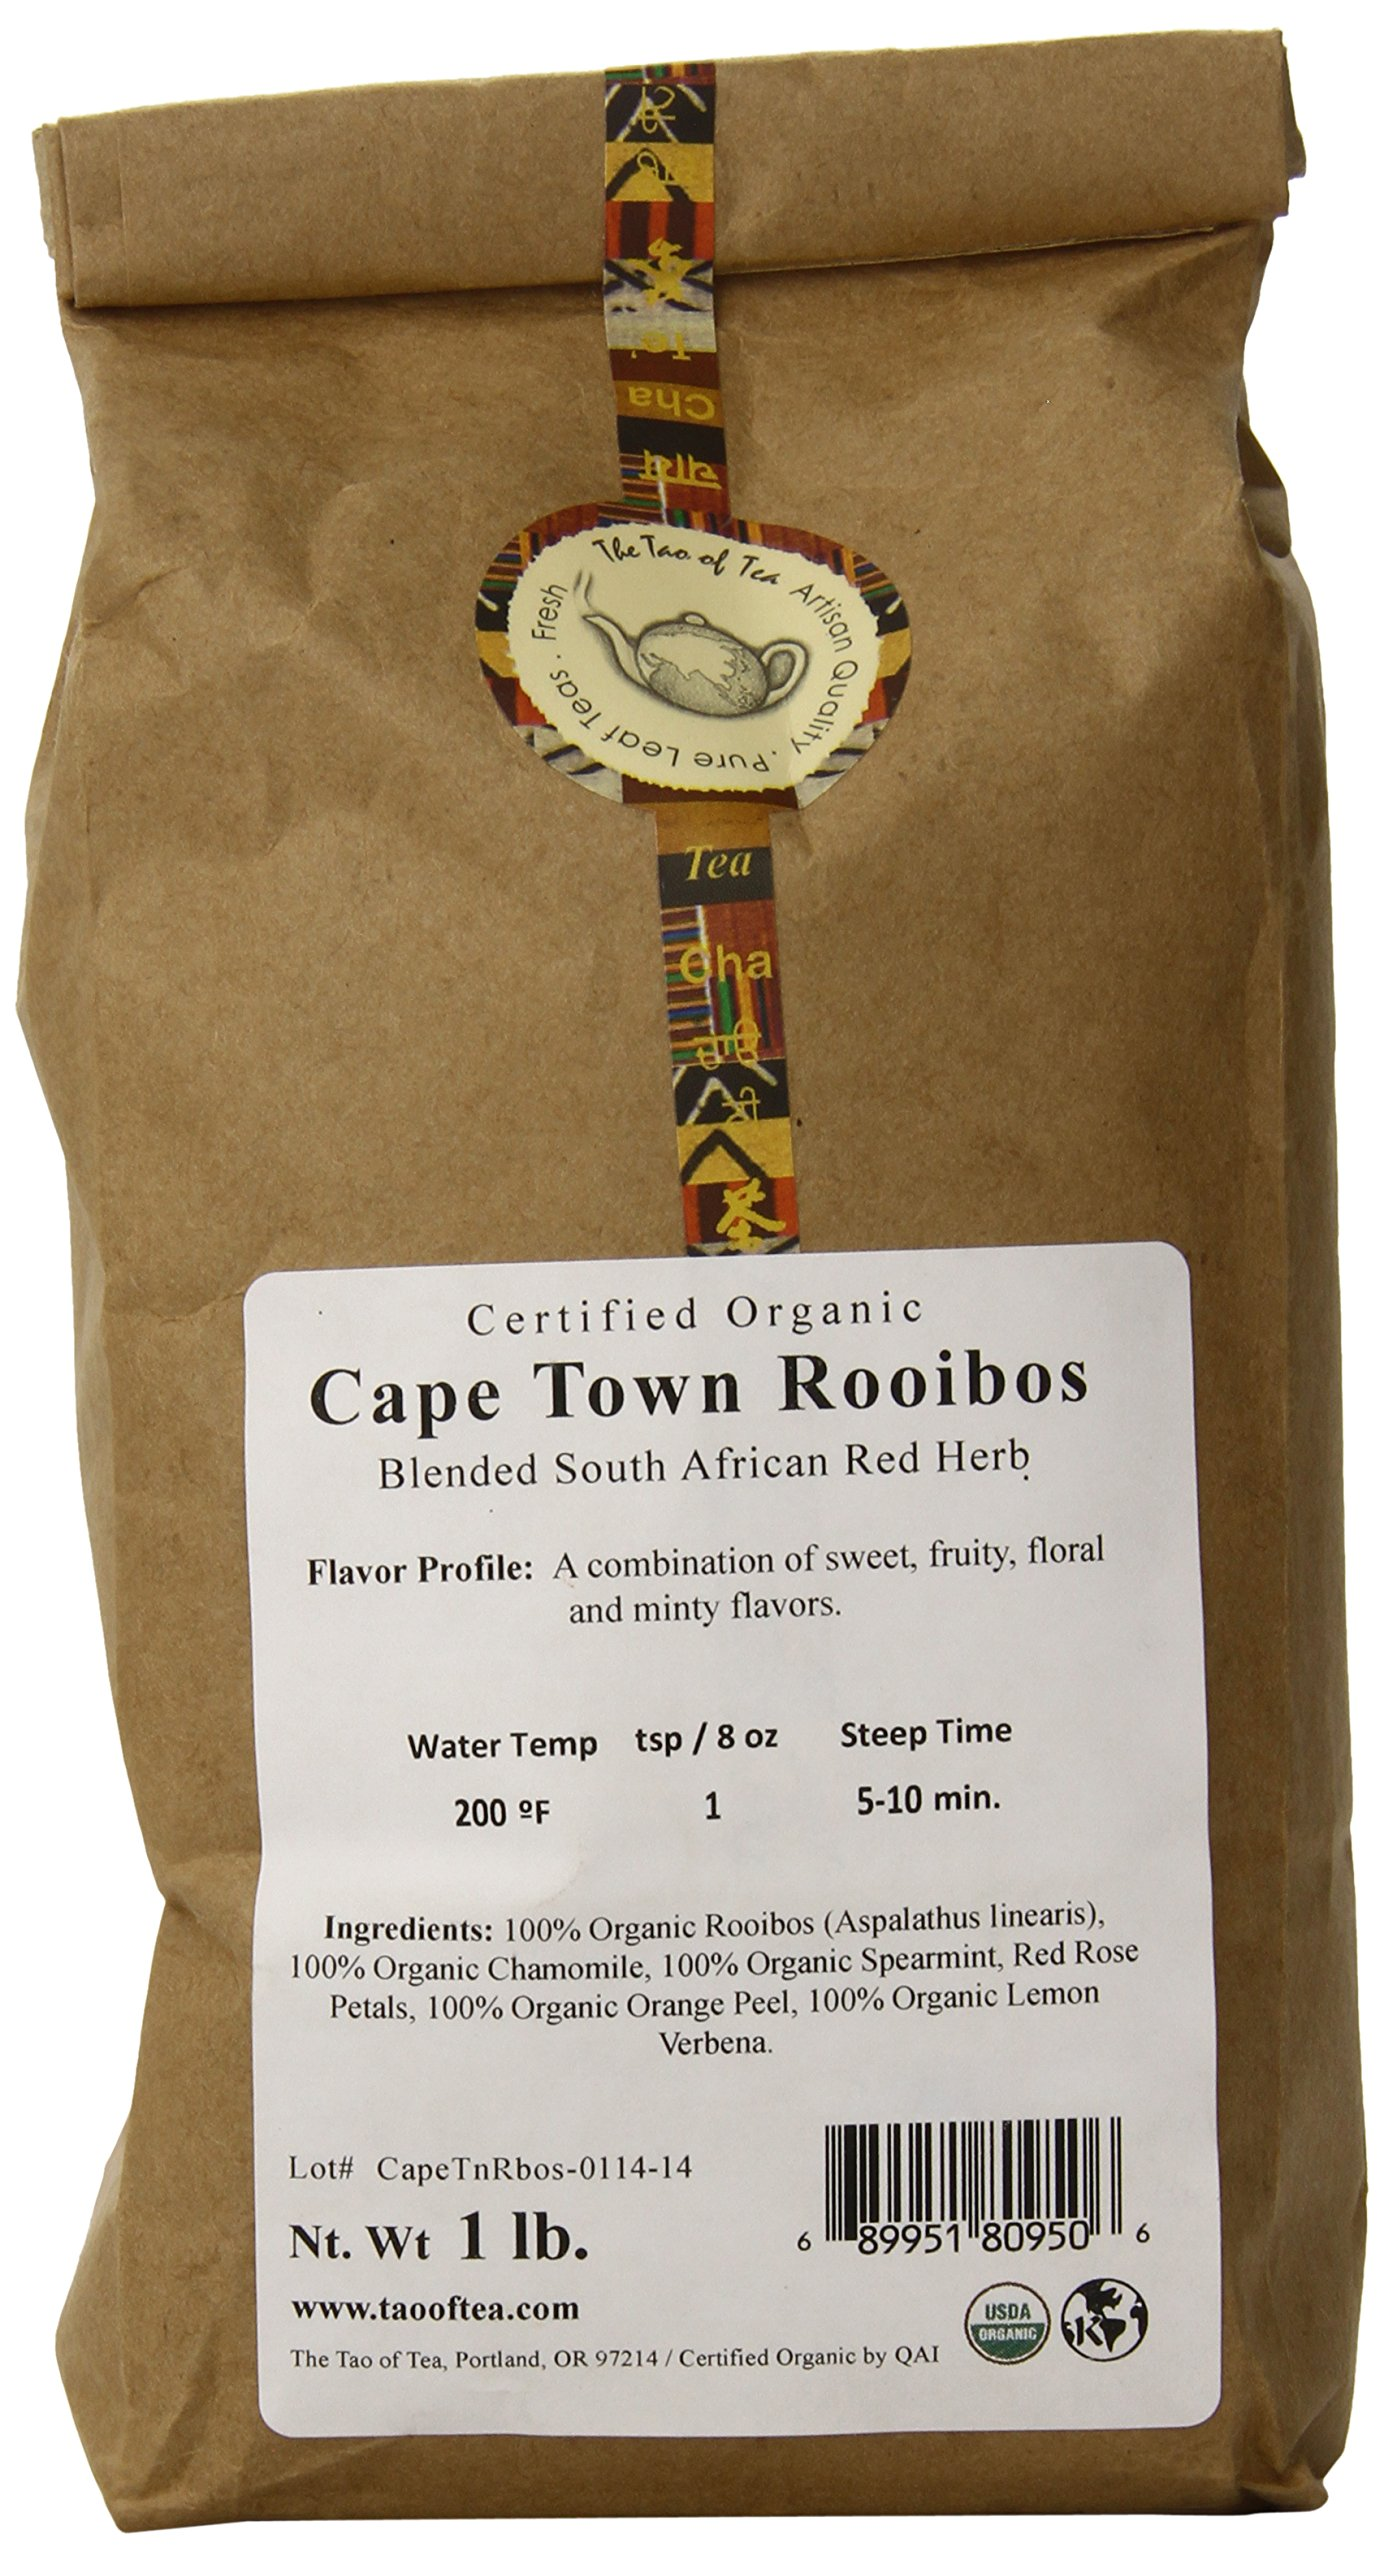 The Tao of Tea Cape Town Rooibos, Certified Organic Blended African Red Herb, 1-Pound